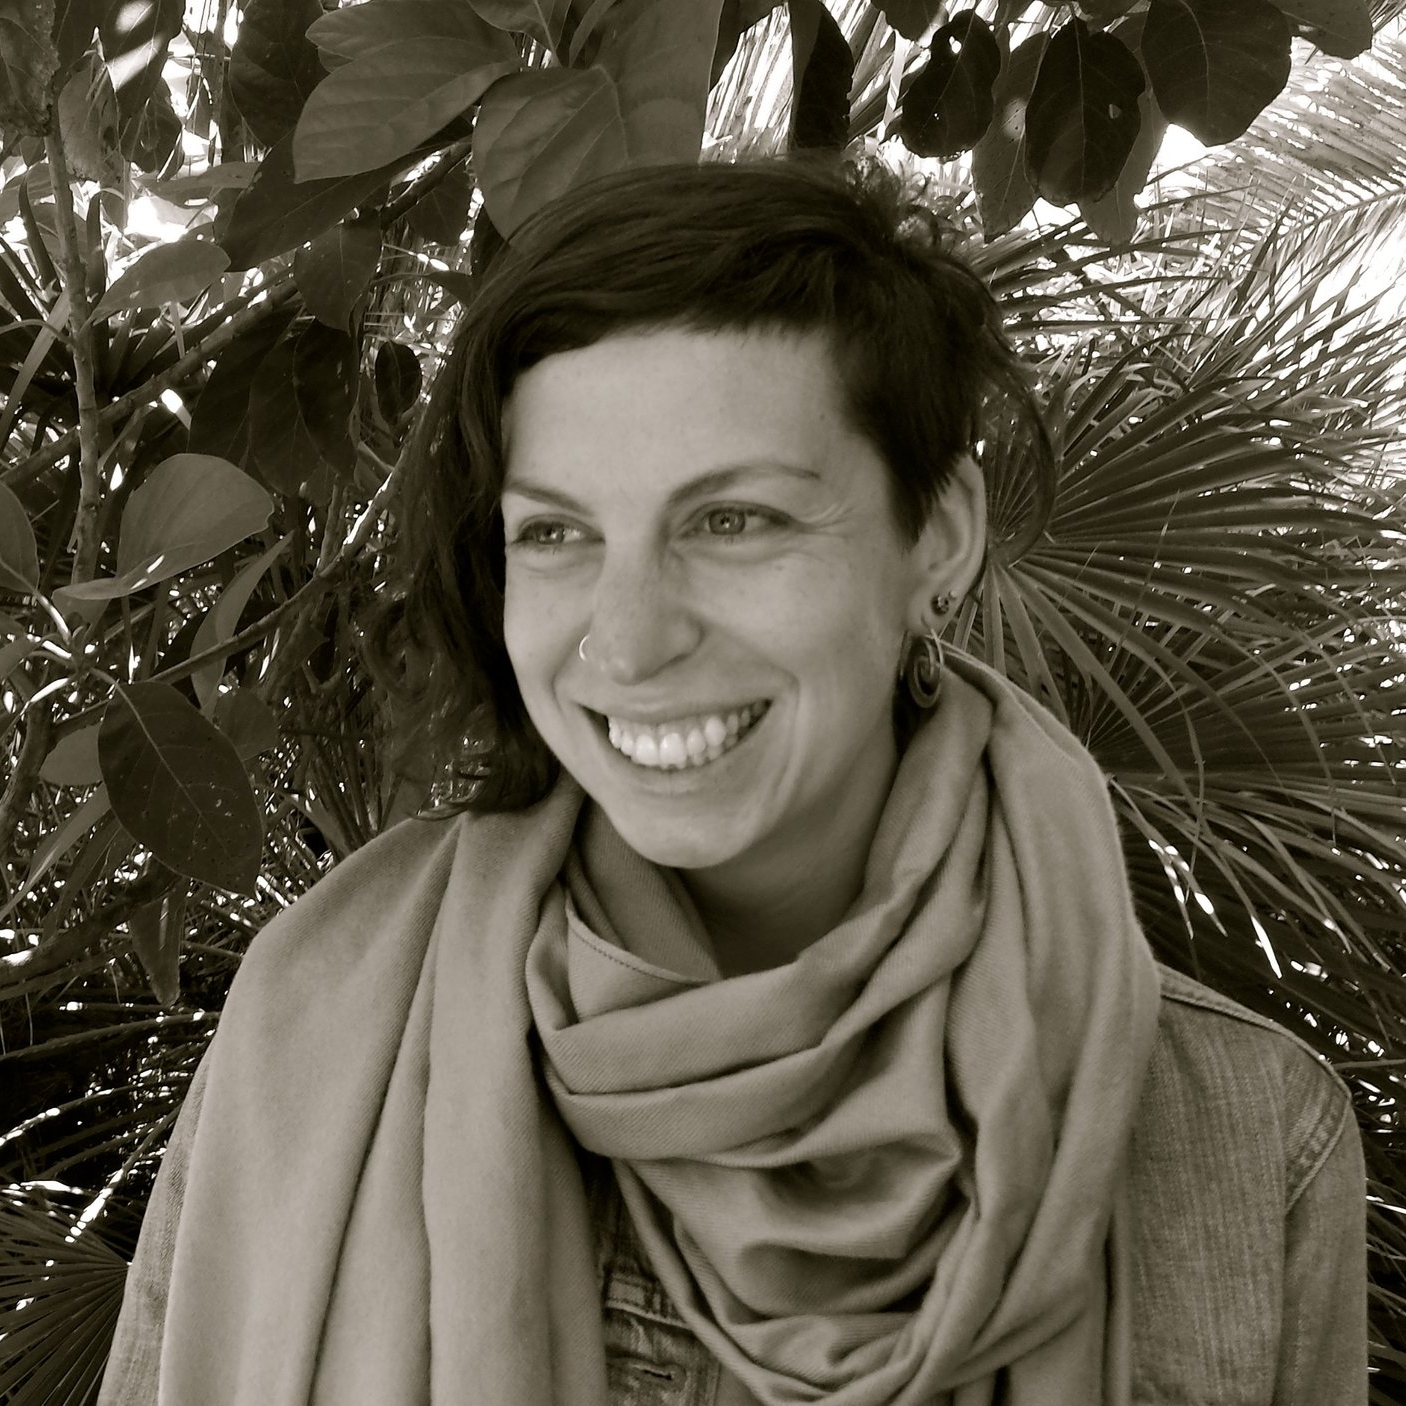 Kiki Lipsett - Kiki is a musician, vocal coach, and prayer leader in the Bay Area. She grew up at the intersection of Judaism and music, and finds much joy in creating prayerful Jewish music with others. Kiki has a particular interest in supporting women to unleash the full expression of their voice.